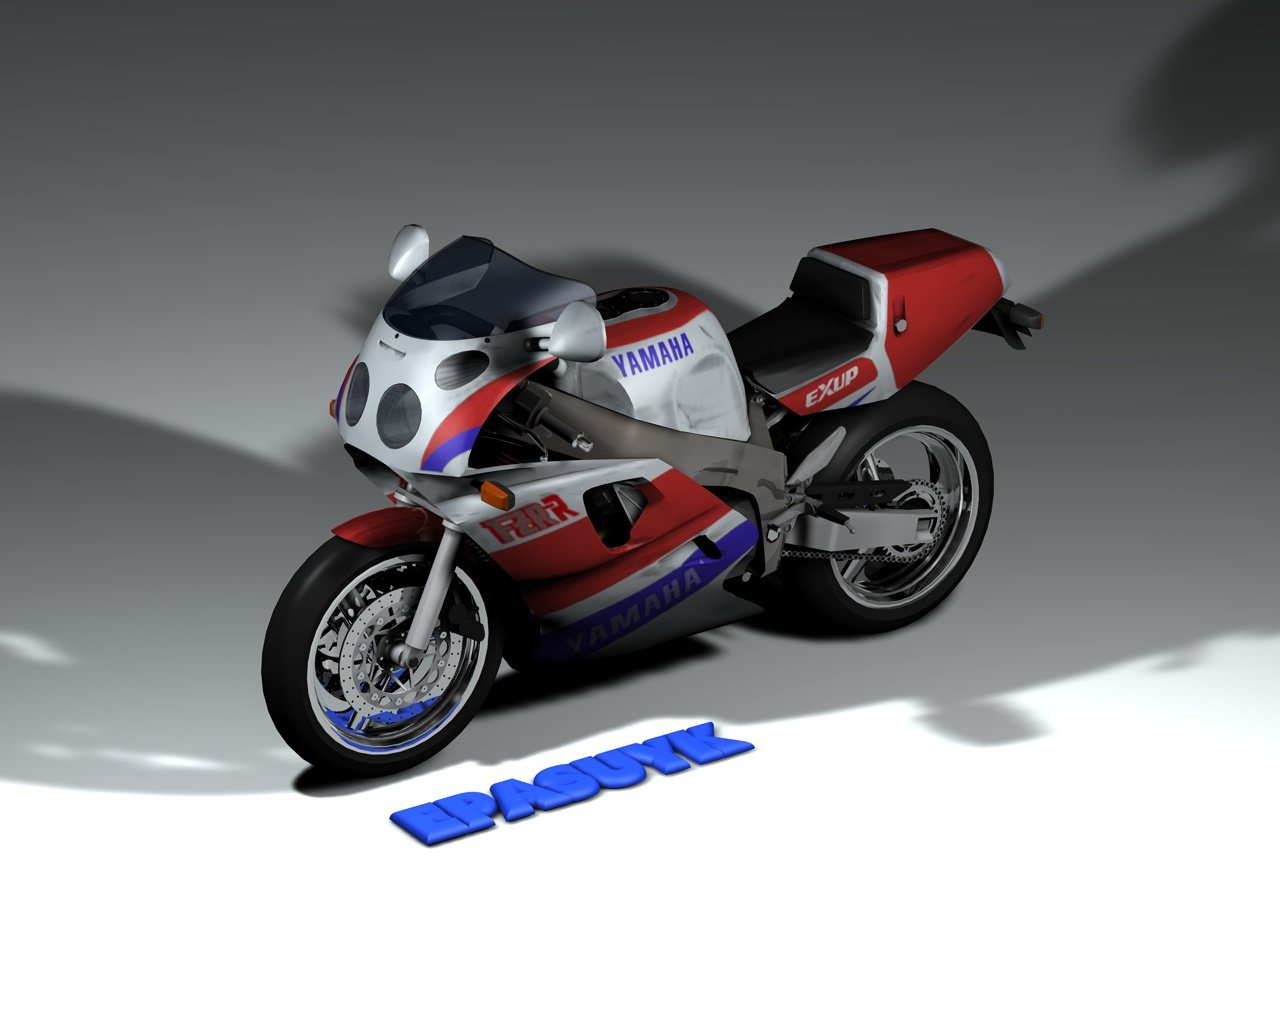 Yamaha Motorbike Downloadfree3d Com